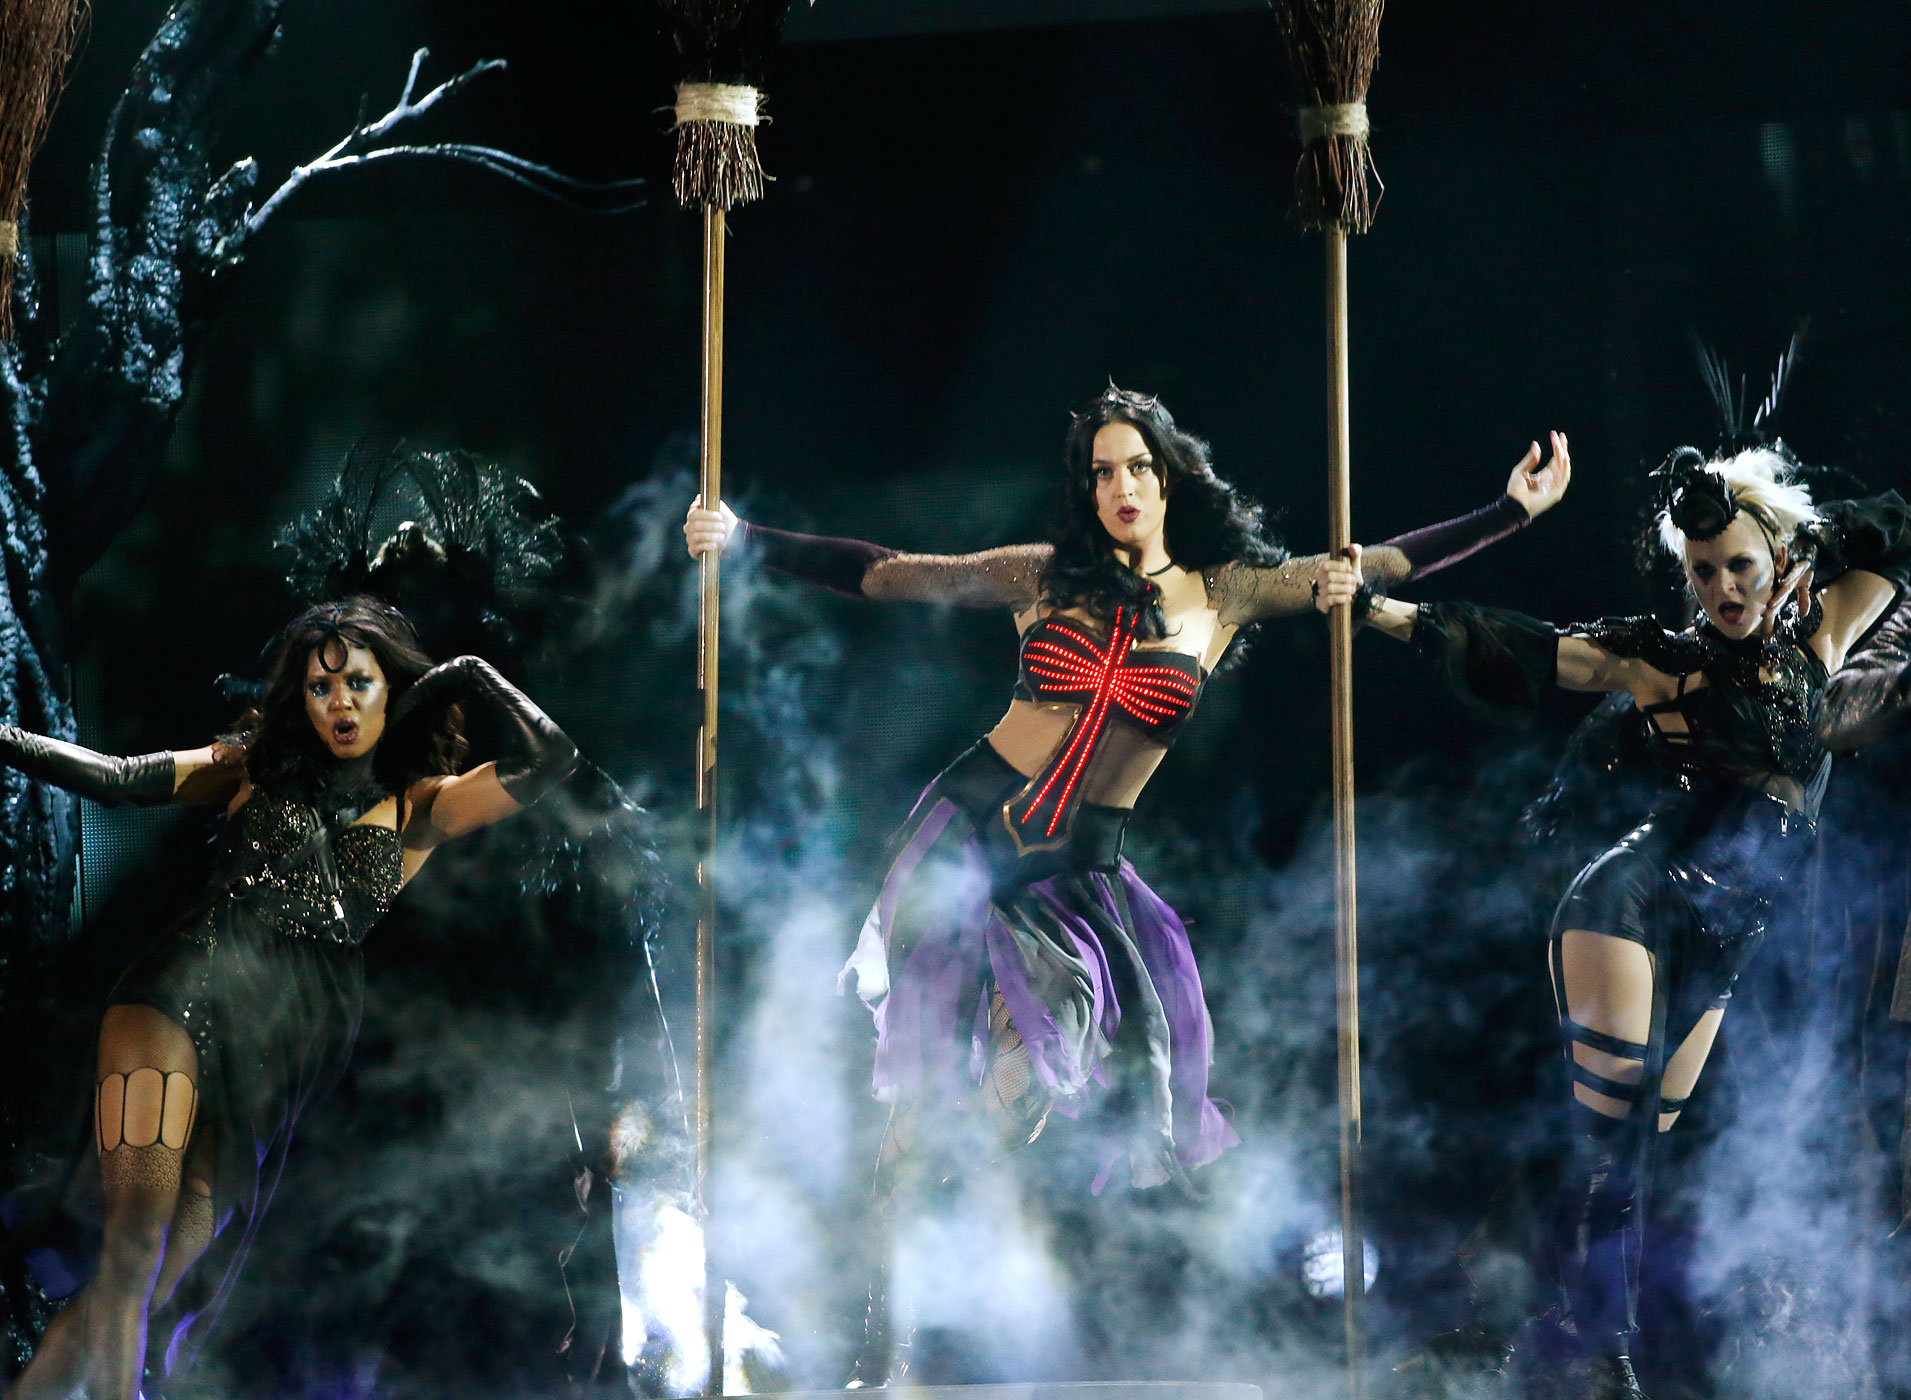 """Katy Perry performs """"Dark Horse"""" at the 56th annual Grammy Awards in Los Angeles, California January 26, 2014."""